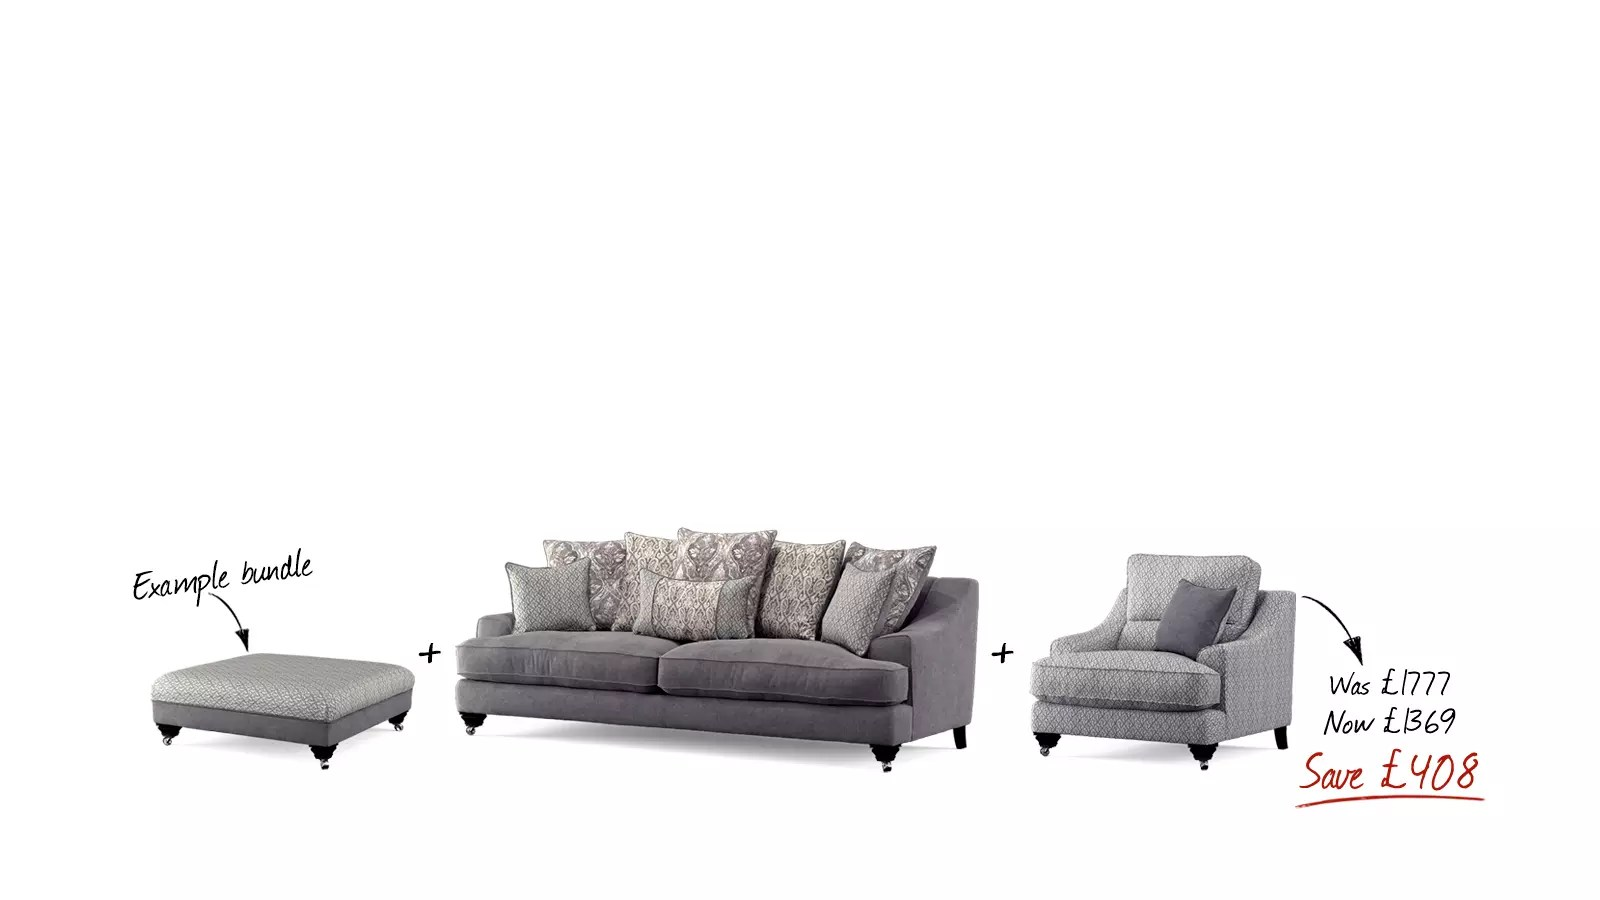 Sofa Sales In Glasgow Sofology Sale Up To 50 Off Ex Display And Outlet Sofas